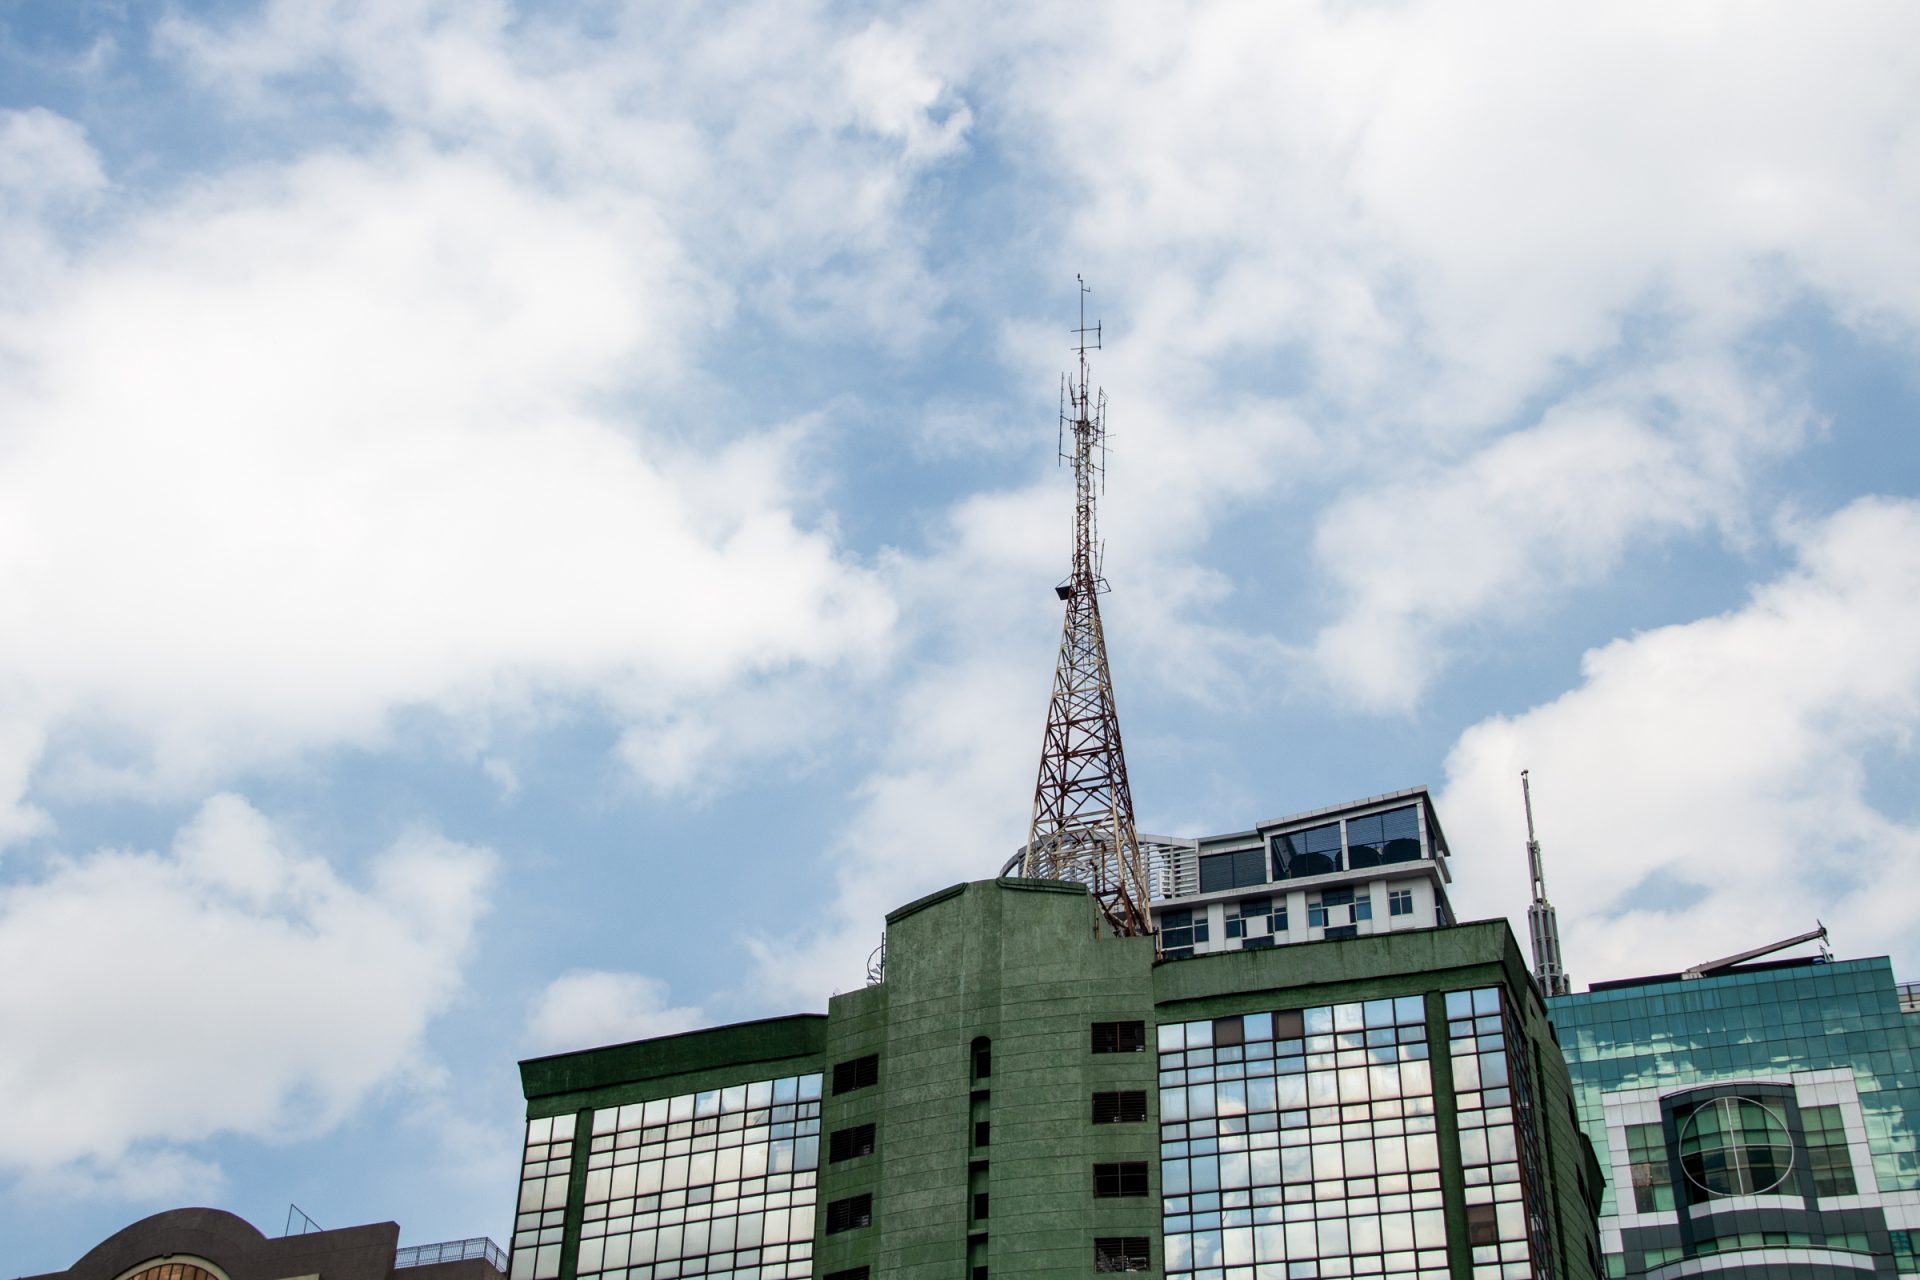 Radio Tower On Glass And Concrete Building